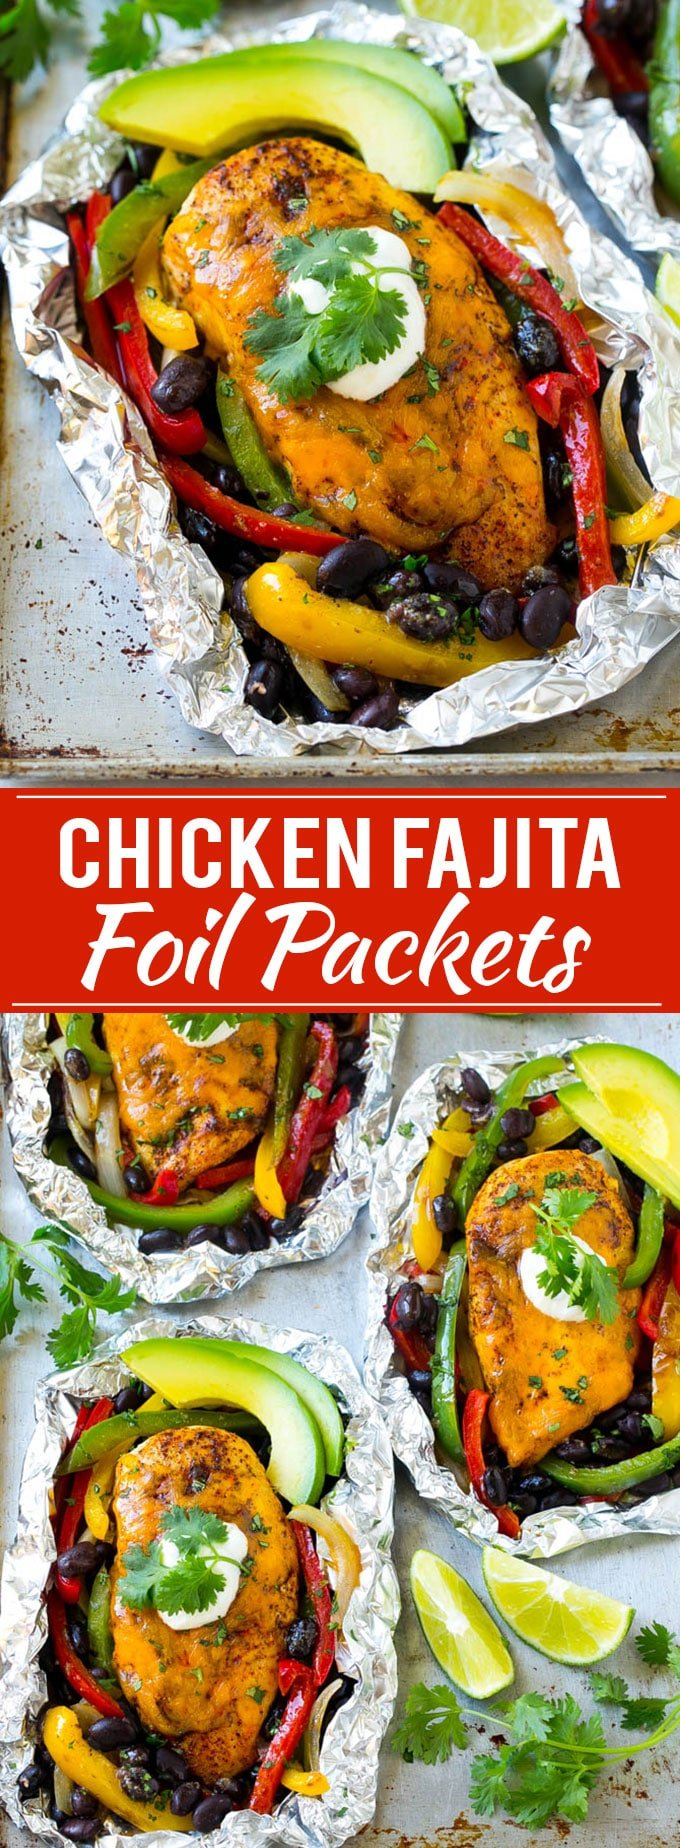 Chicken Fajita Foil Packet Recipe | Chicken Fajita Recipe | Foil Pack Recipe | Mexican Chicken